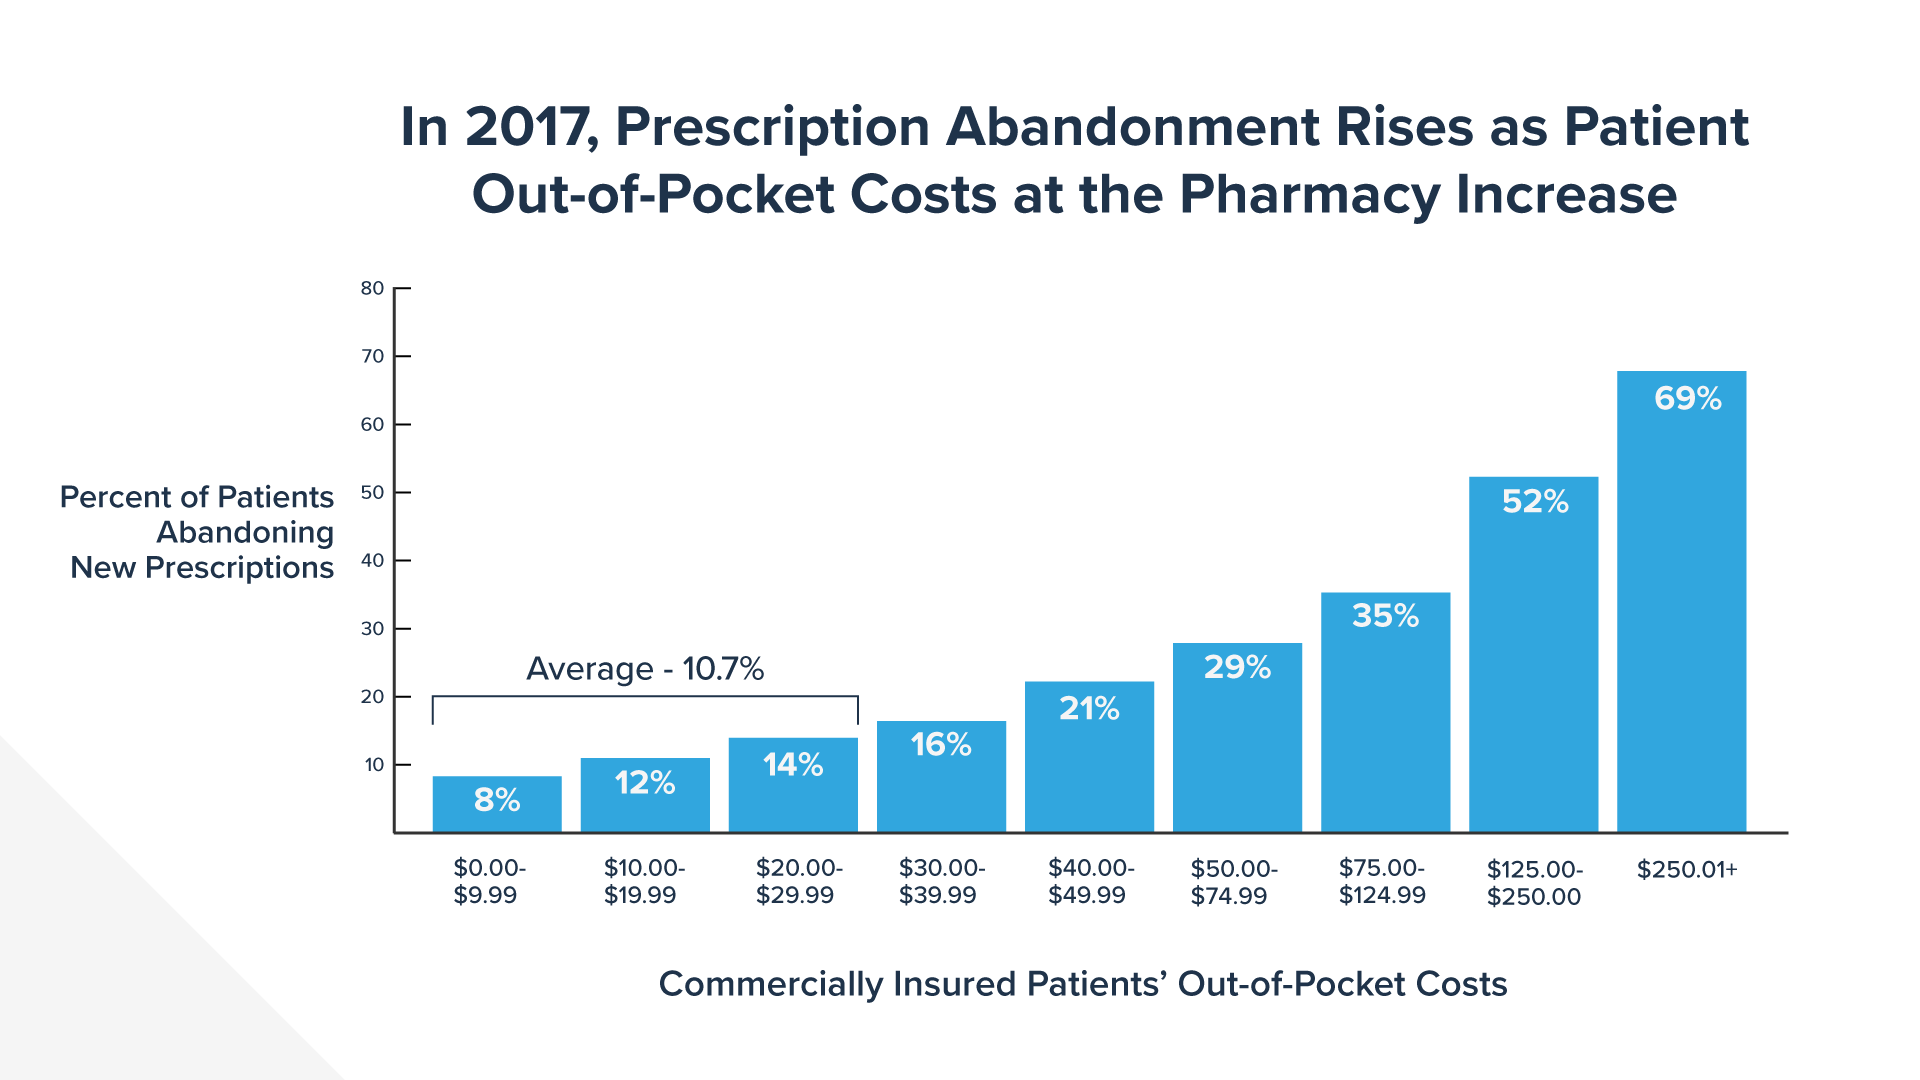 69 percent of patients abandon medicines when cost sharing is more than $250